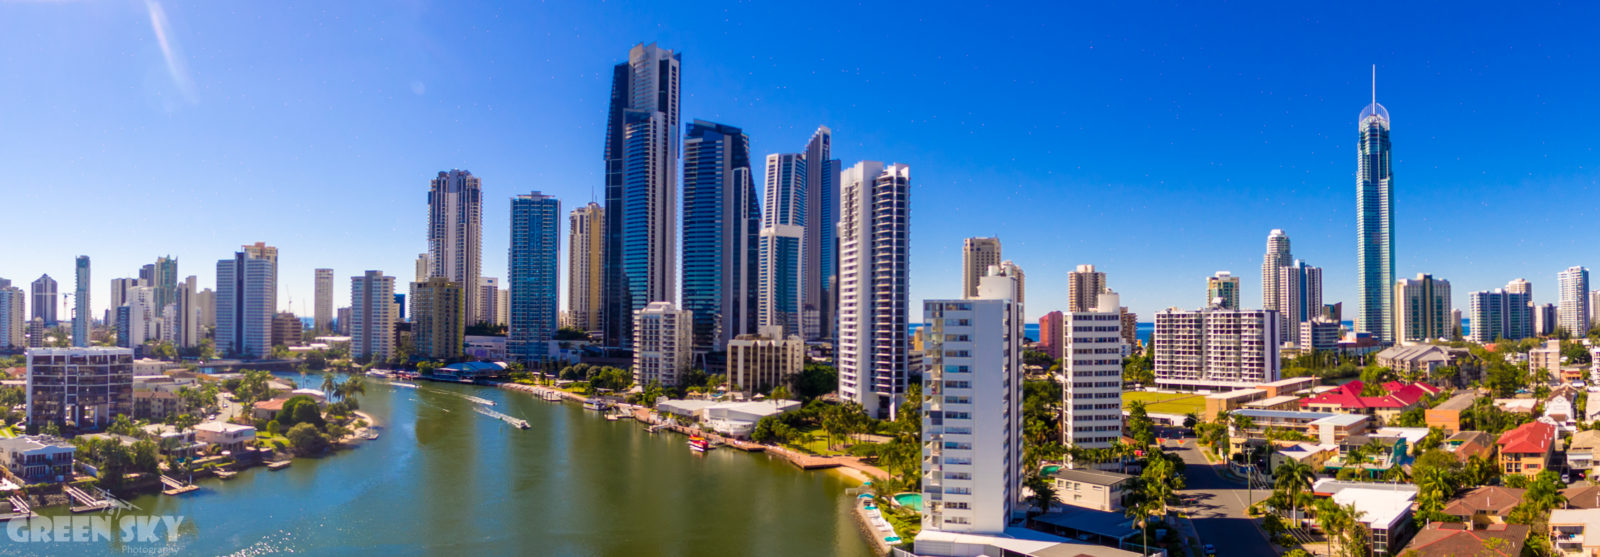 real estate drone photograpy brisbane